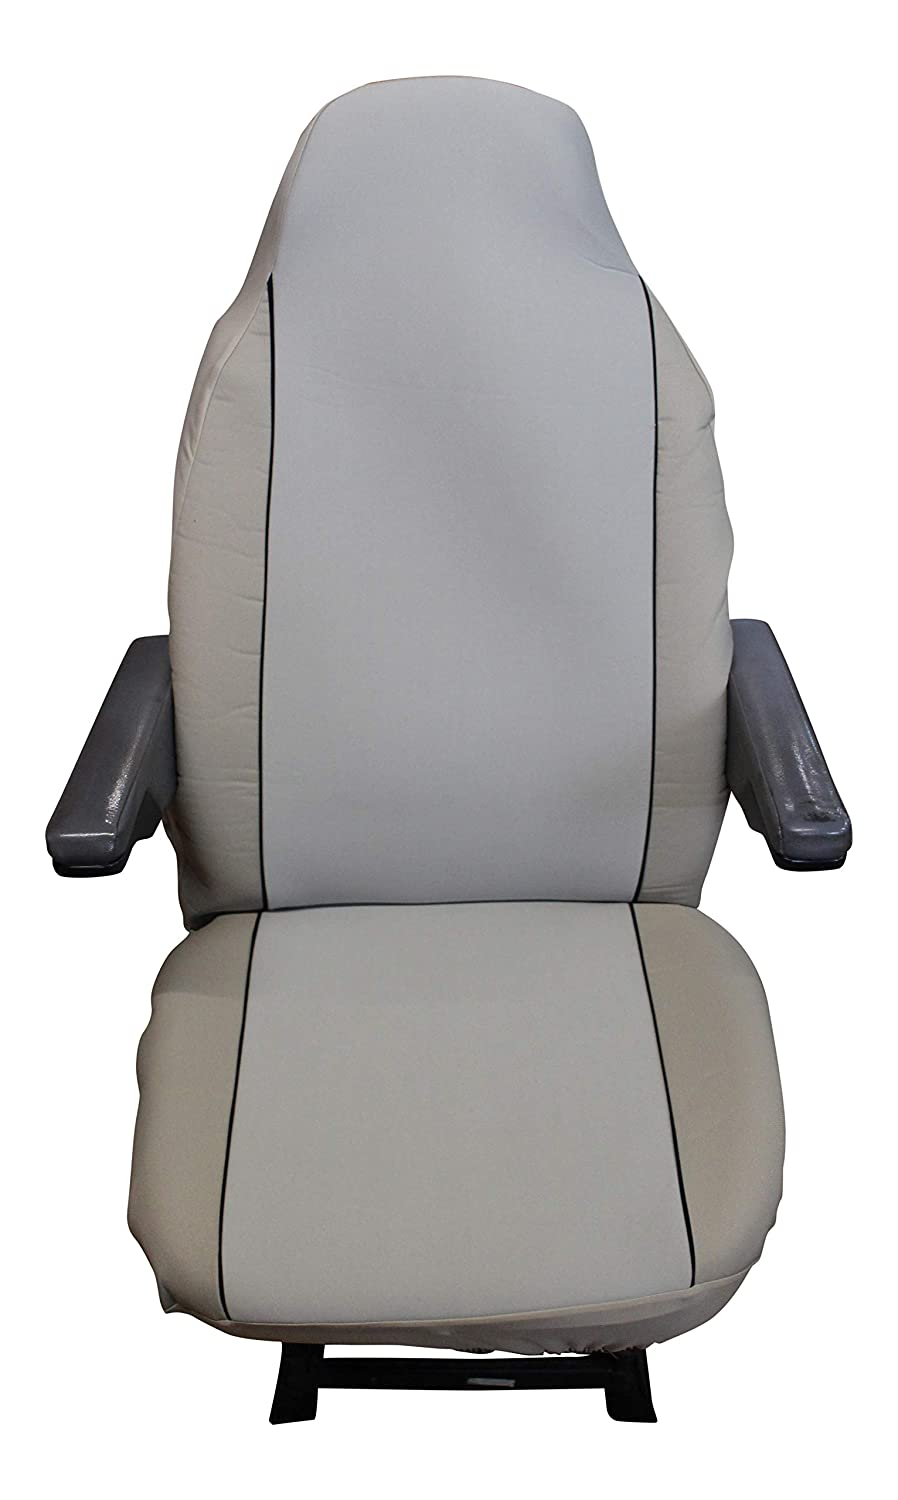 Carseatcover-UK Luxury MOTORHOME Seat Covers UNIVERSAL FIT Grey Paisley CHOICE OF 10 FABRICS